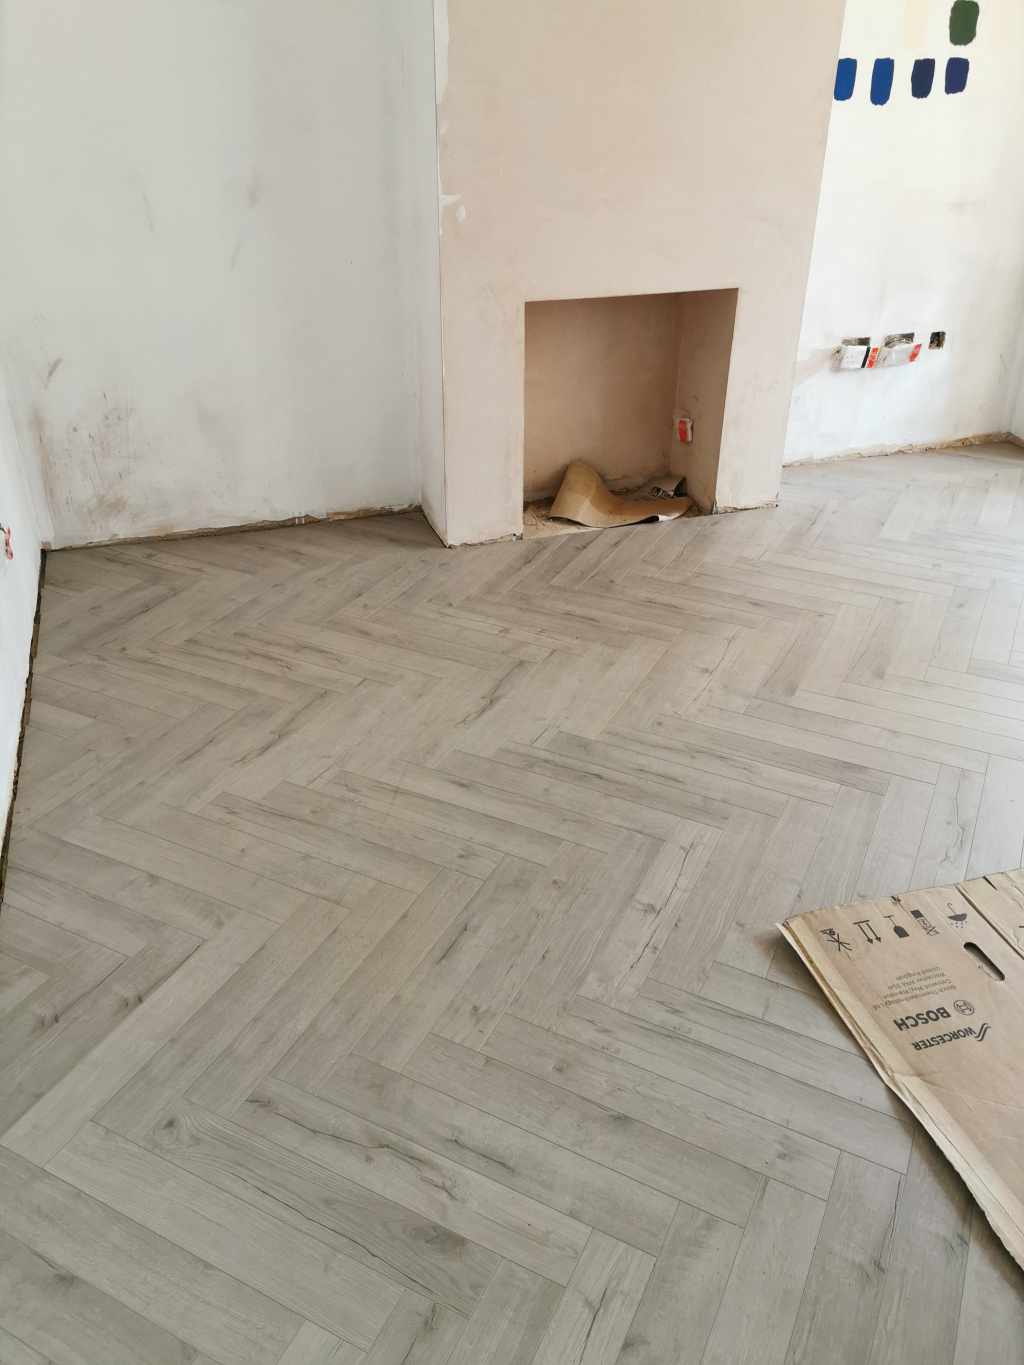 Herringbone Laminate Flooring Installation - #1